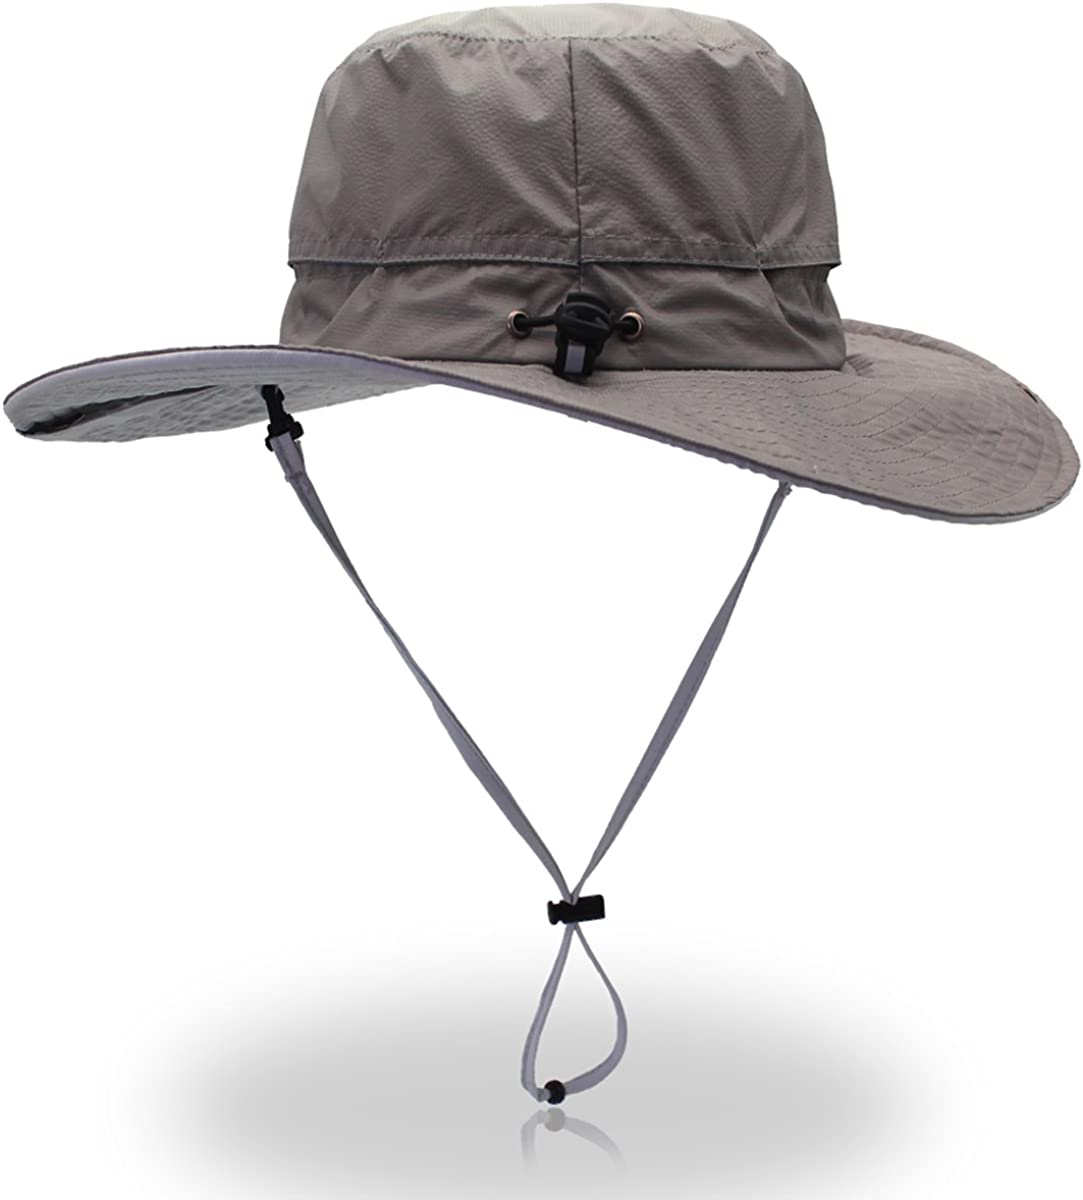 outfly Ultra Lightweight Bucket Hat Sun Protection Fishing hat Wide Brim Quick-Dry UV50+